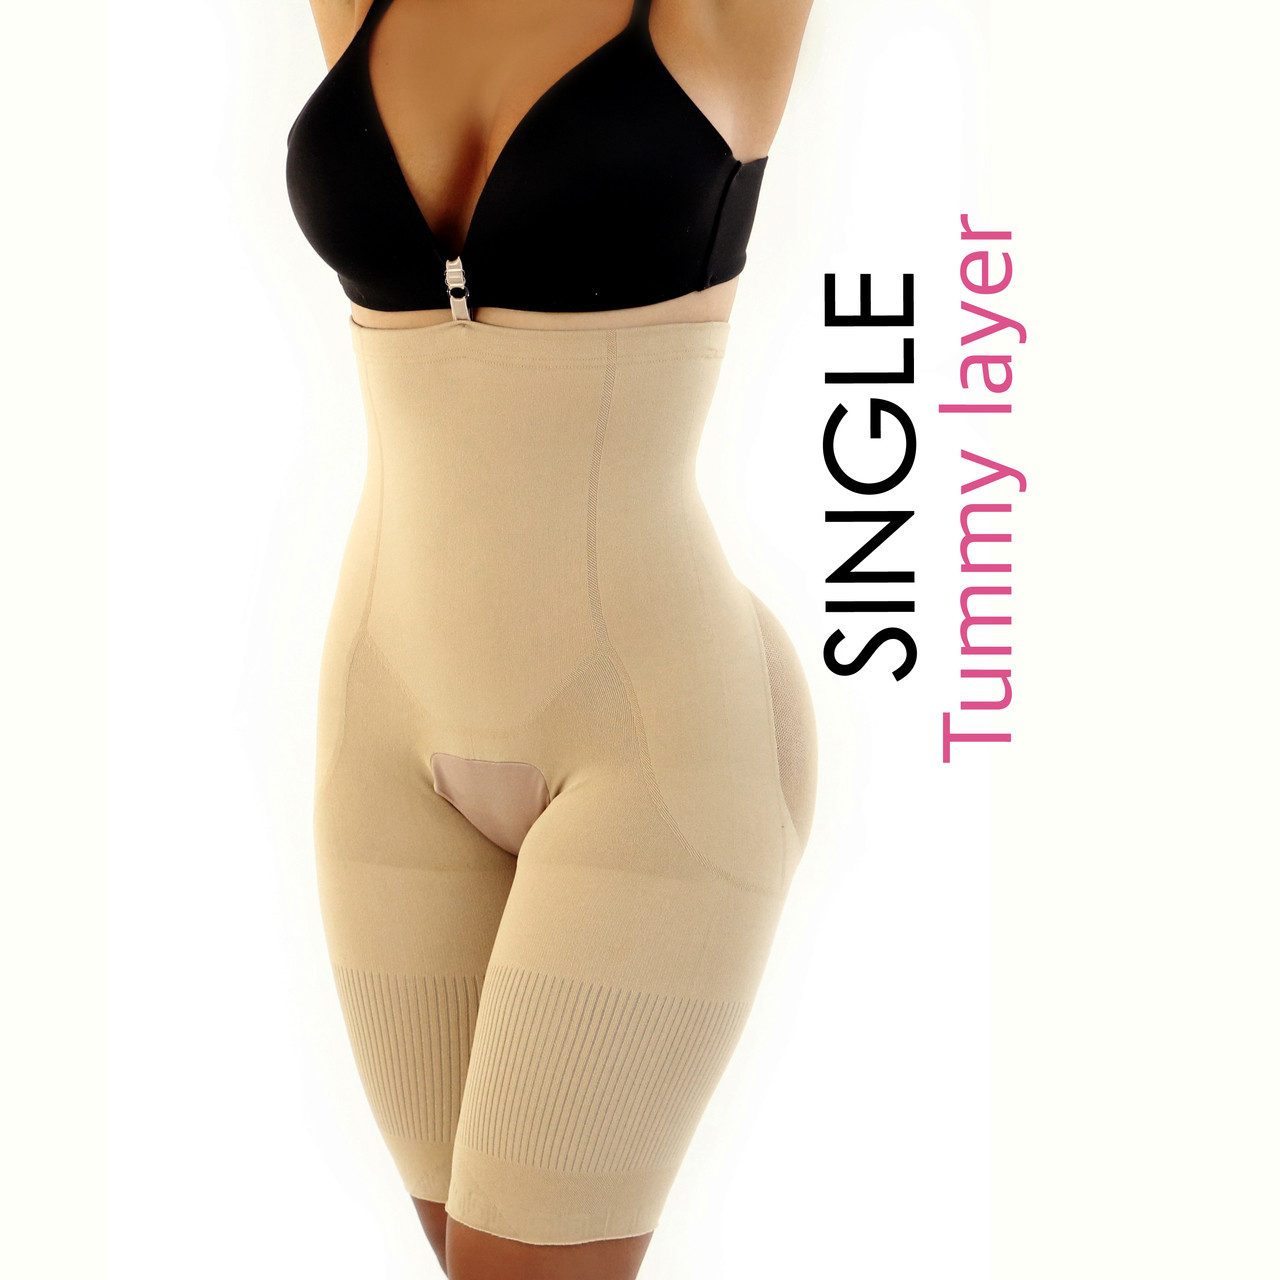 1039d1cfe Happy Butt N°7 Single Tummy Layer - YAHAIRA INC